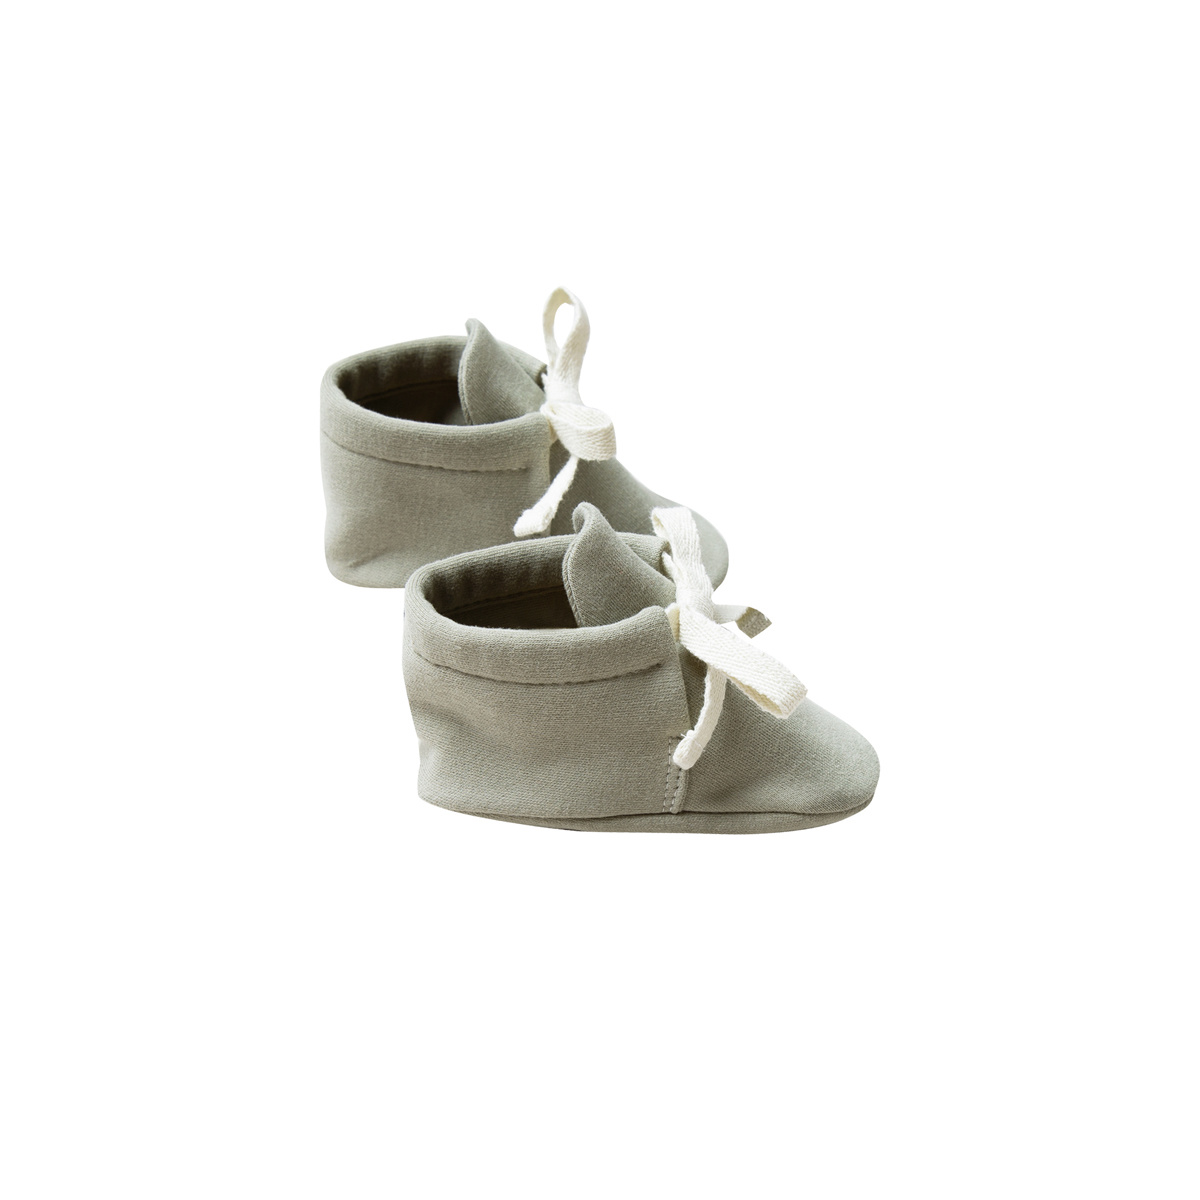 Quincy Mae Quincy Mae - Baby Booties